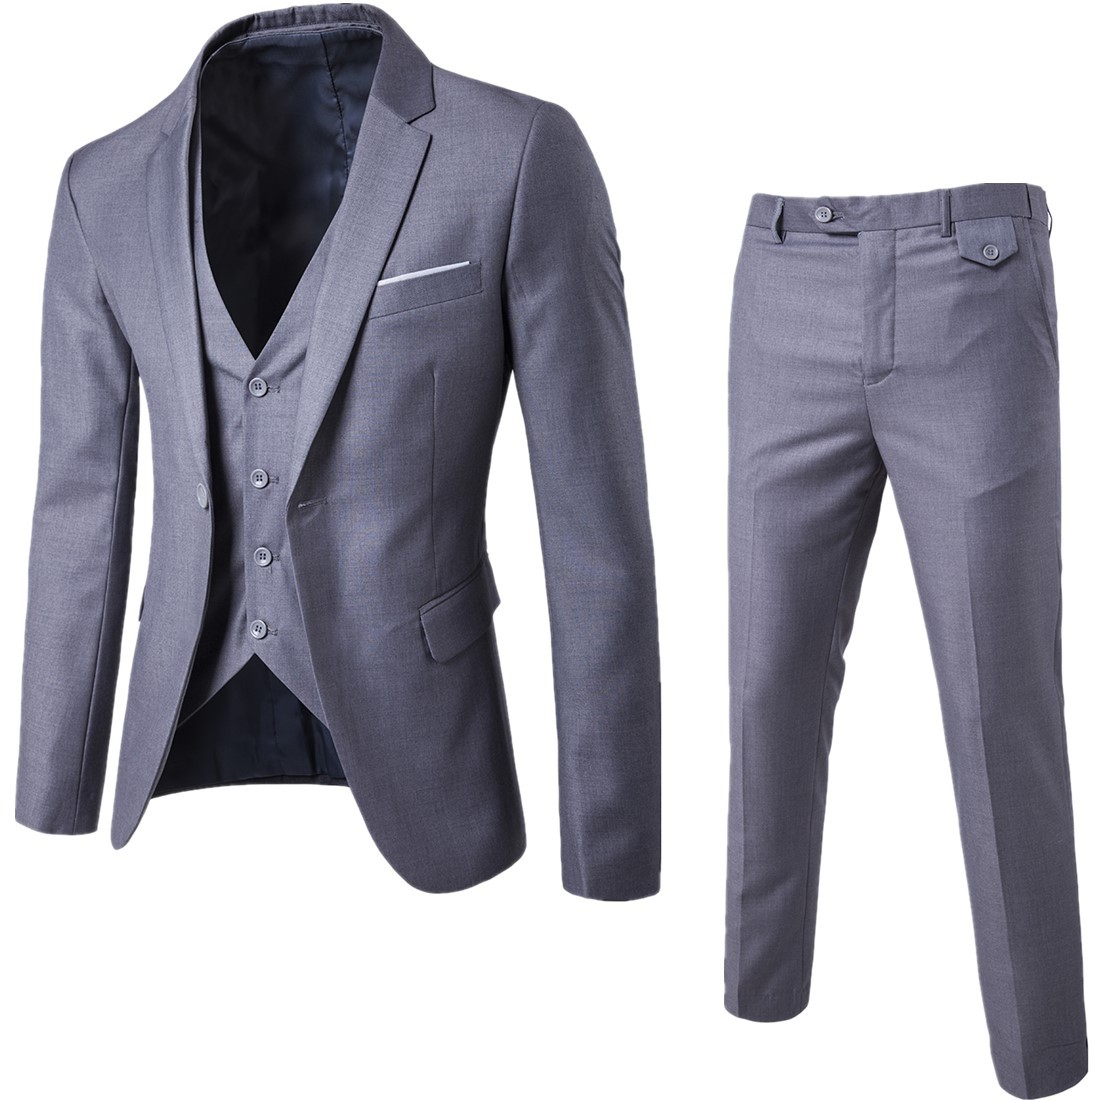 2018 New Arrival Men Business Suit Slim Fit Classic Male Suits Good Quality Wedding Suits For Men 3 Pieces (Jacket+Pant+Vest)